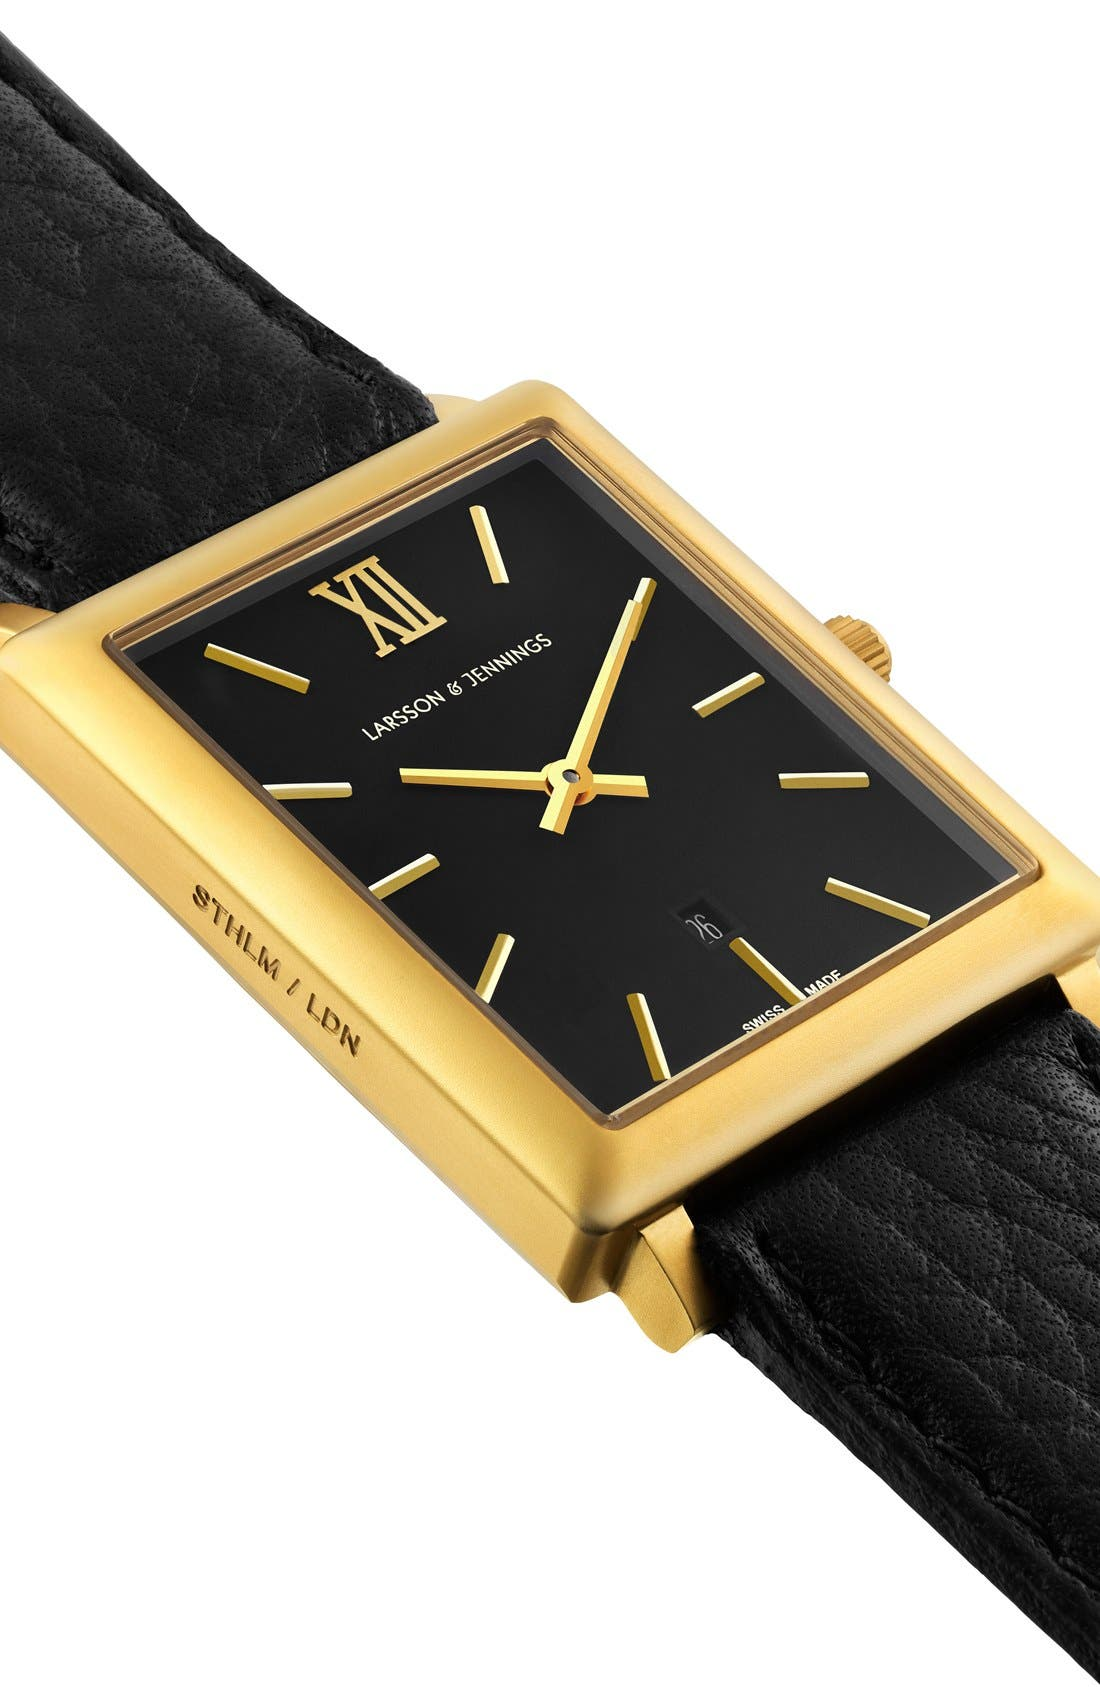 'Norse' Rectangular Leather Strap Watch, 29mm x 40mm,                             Alternate thumbnail 6, color,                             001